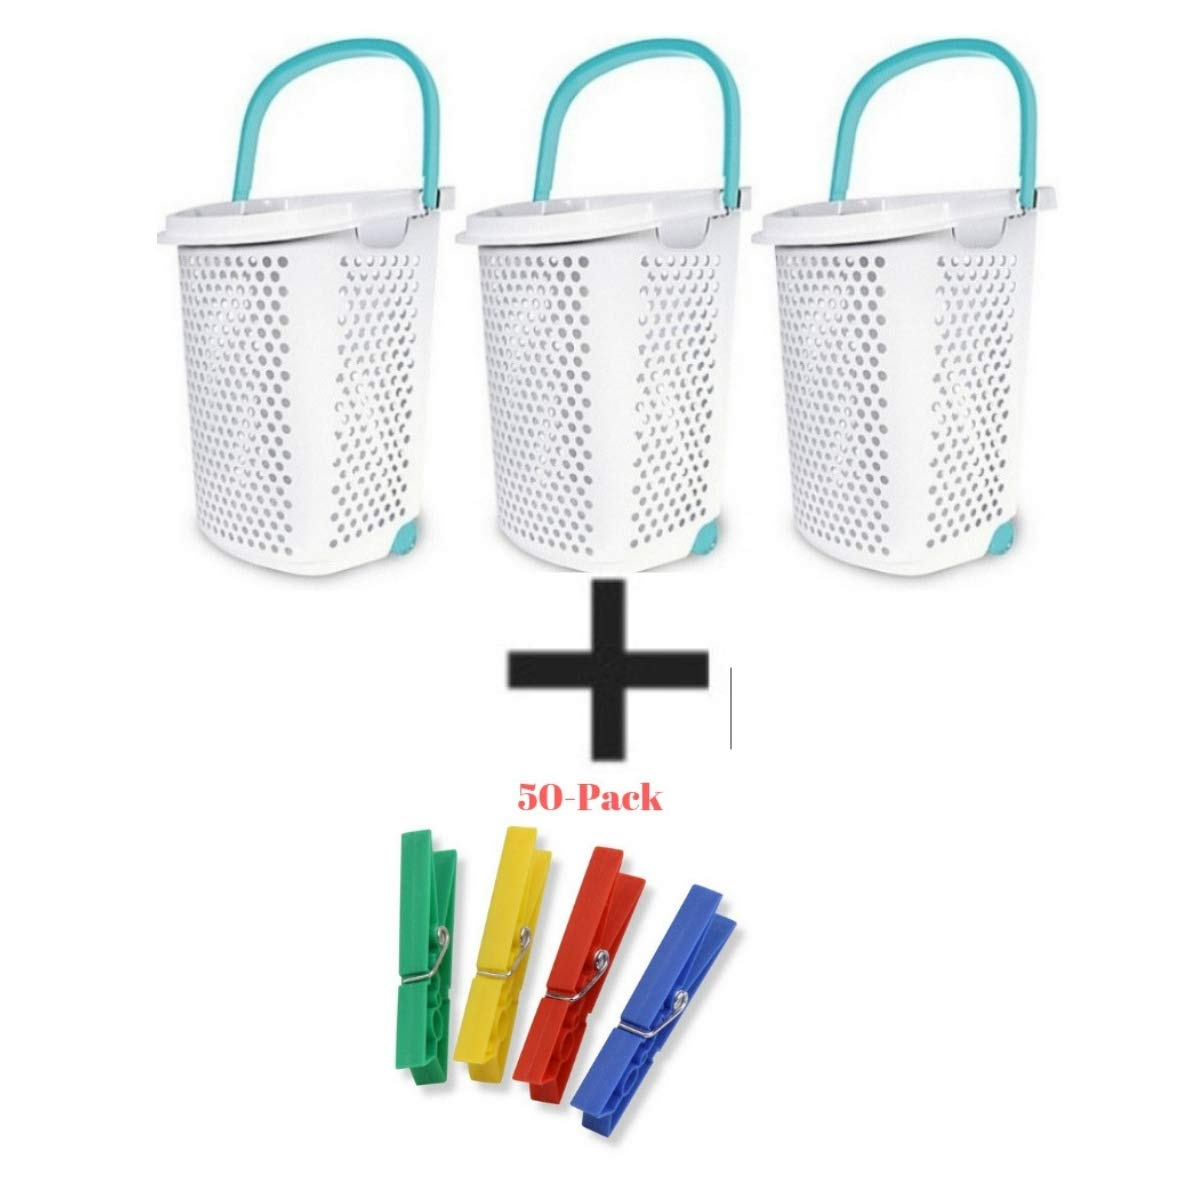 Home Logic Pack of 3 2.0-Bu. Rolling Laundry Hamper Container Bin Storage in White Features Pop-Up Handle, Hole Pattern for Ventilation, Built-in Wheels to Maneuver by Home Logic